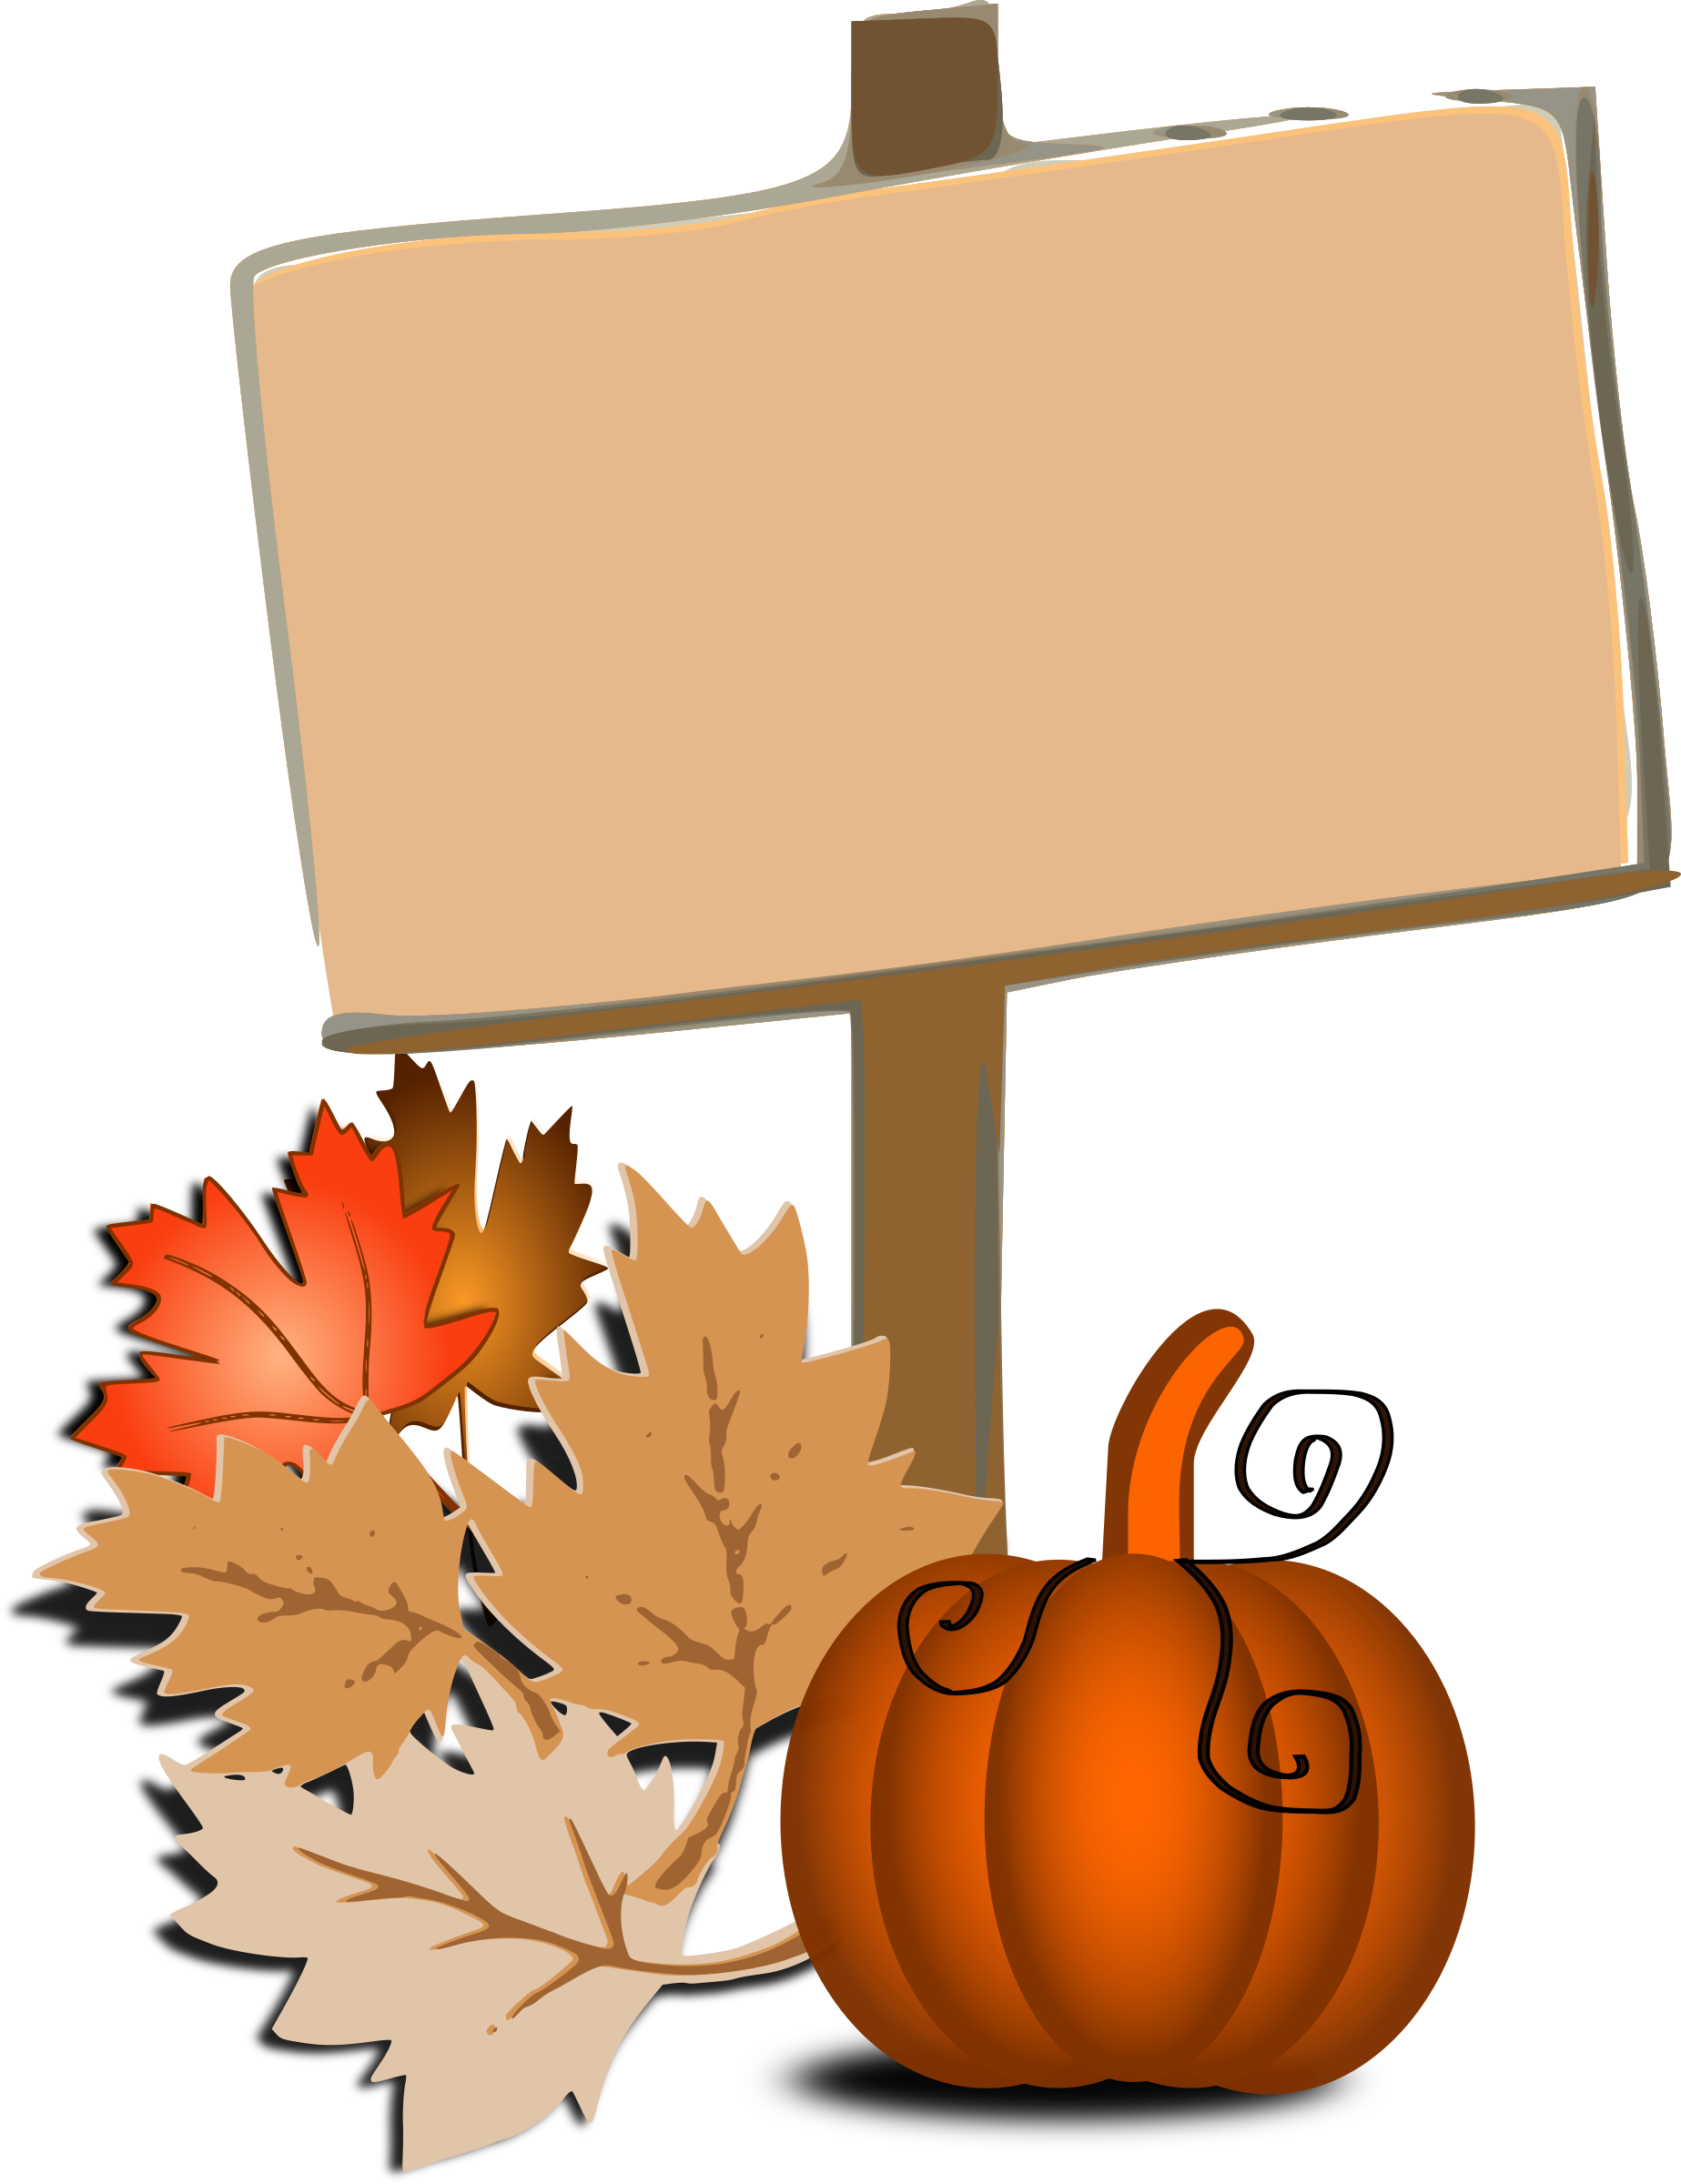 Clip art big image. Fall clipart autumn sign